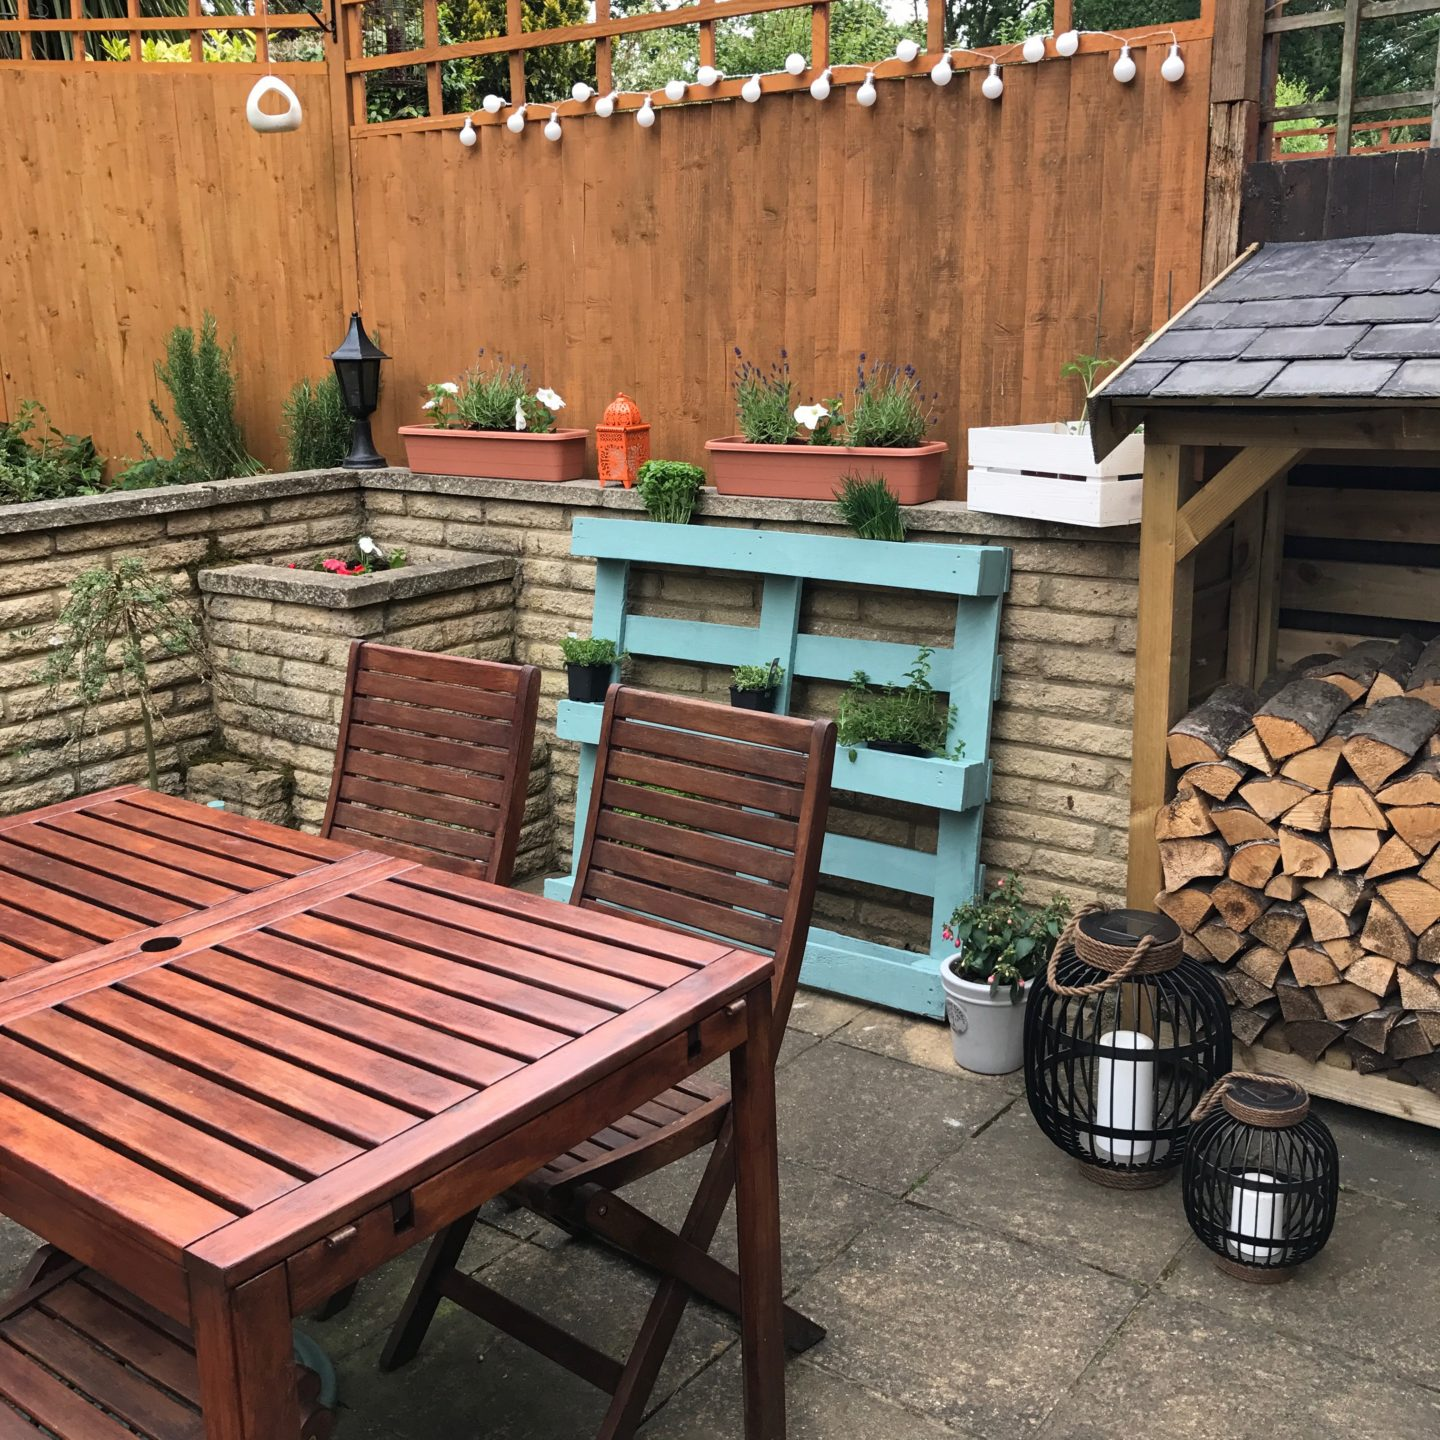 Patio Makeover With Tesco and Katie Rushworth